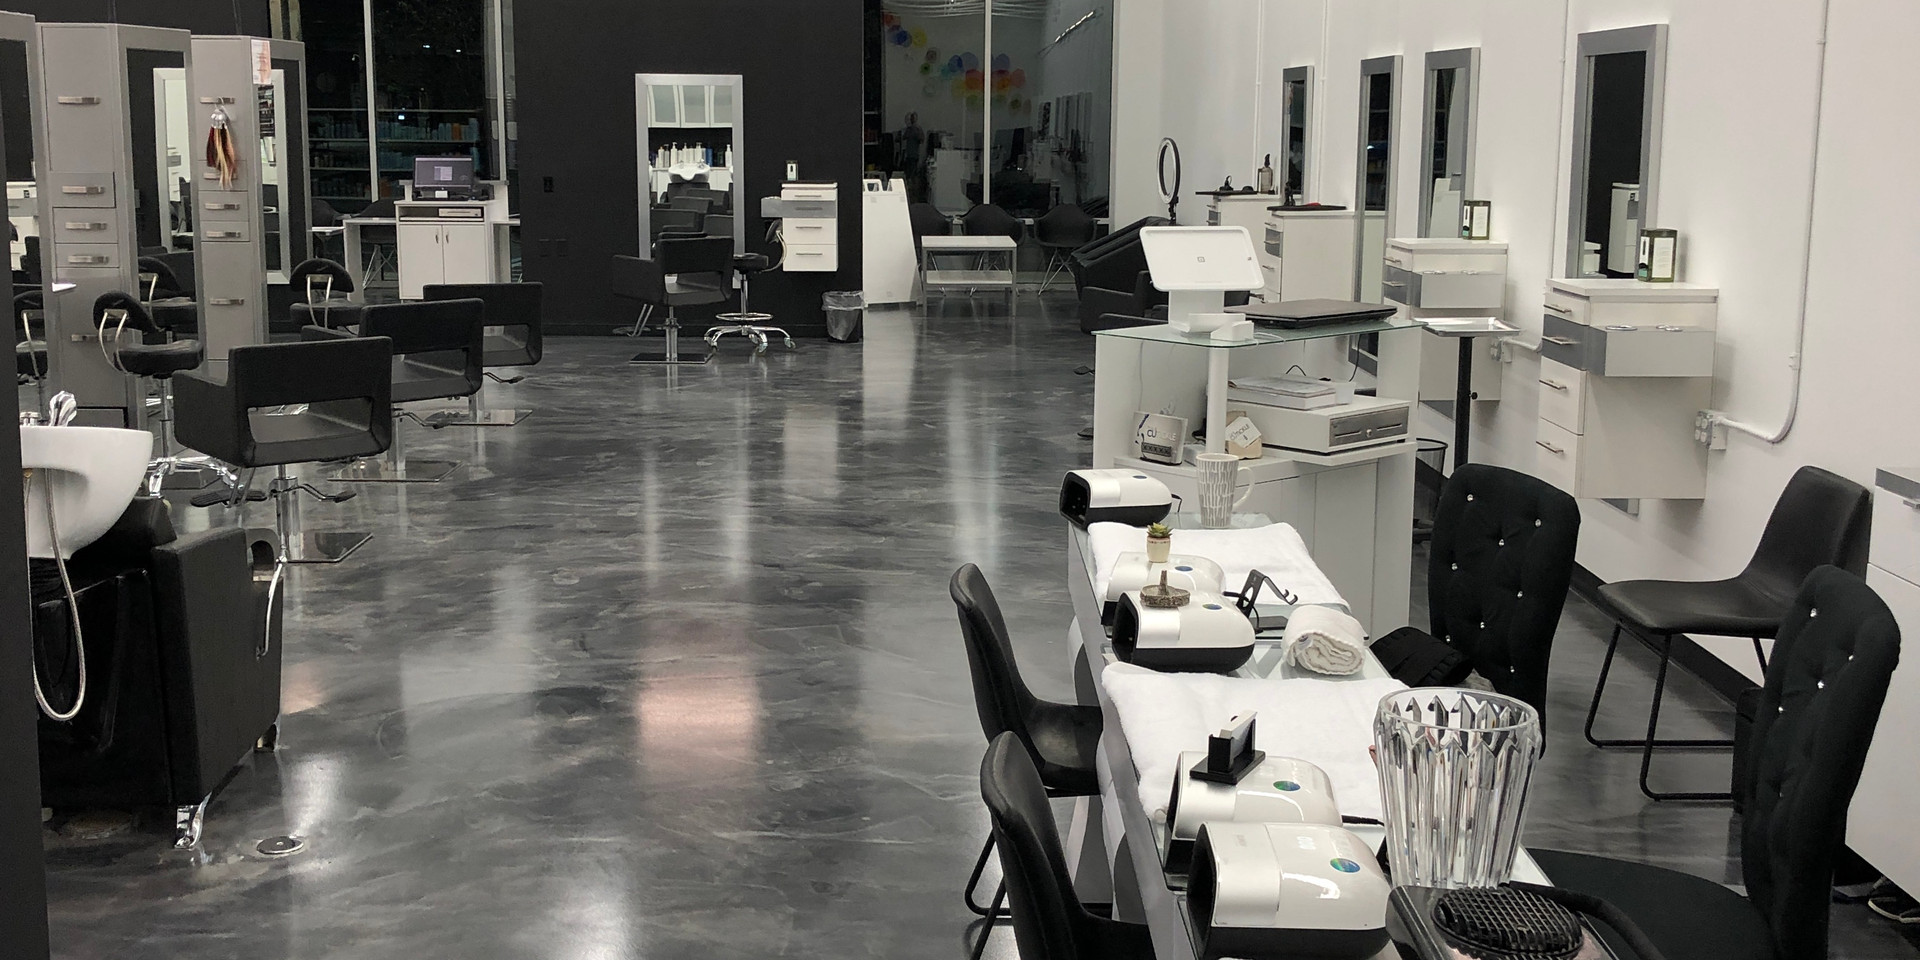 Ocala's favorite Hair and Nail salon, manicure tables